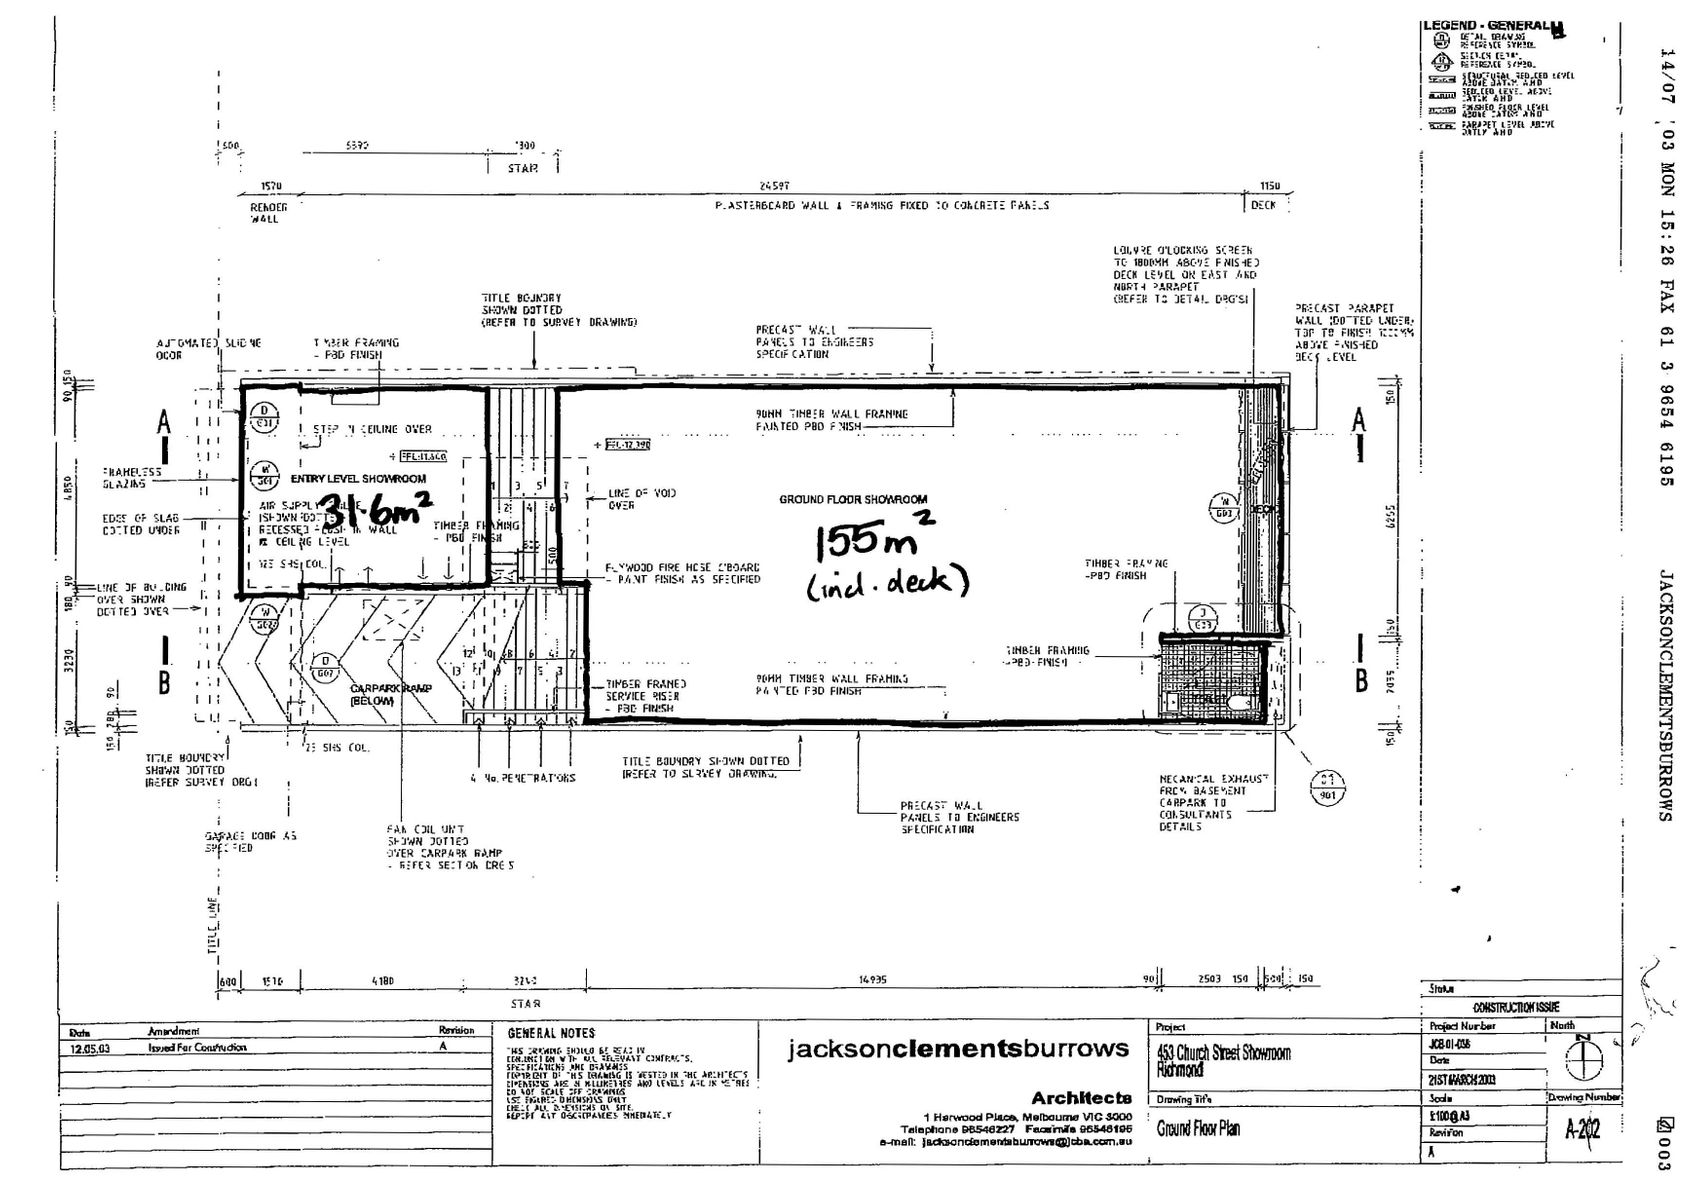 Building Plans Page 1 Ground Floor